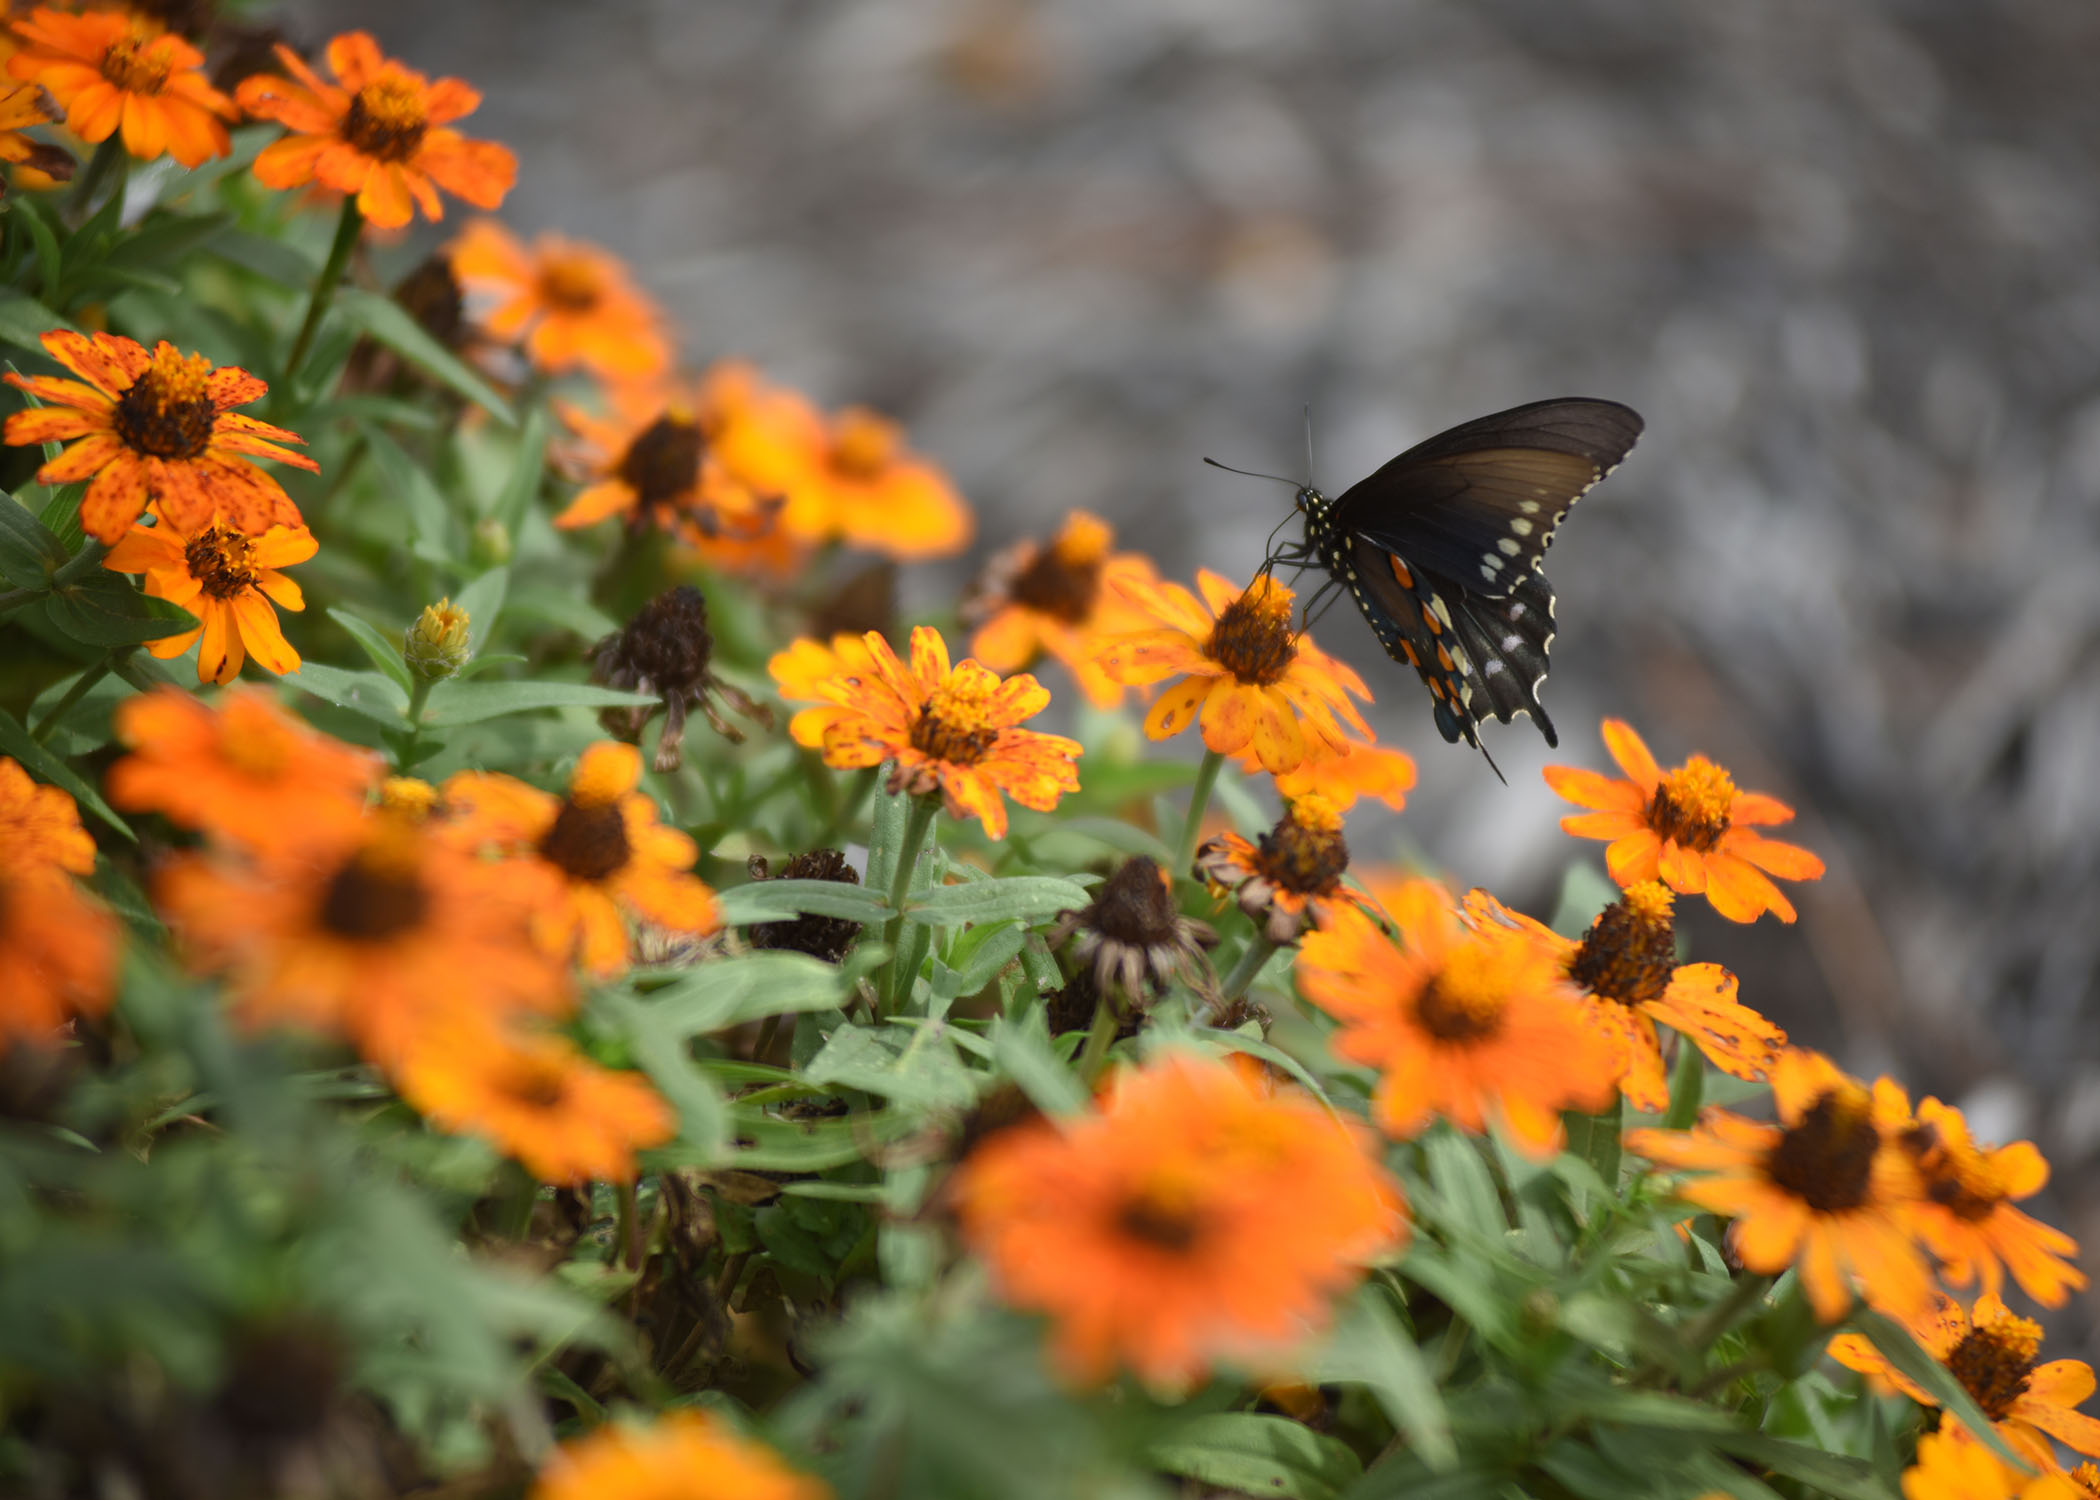 A butterfly visits the pollinator garden at Cheatham Lake in Ashland City, Tenn., Sept. 30, 2017. Volunteer gardeners are needed to join the team responsible for developing, maintaining and improving the garden, working toward certification as a Monarch Waystation at the U.S. Army Corps of Engineers Nashville District project. (Photo by Lee Roberts)